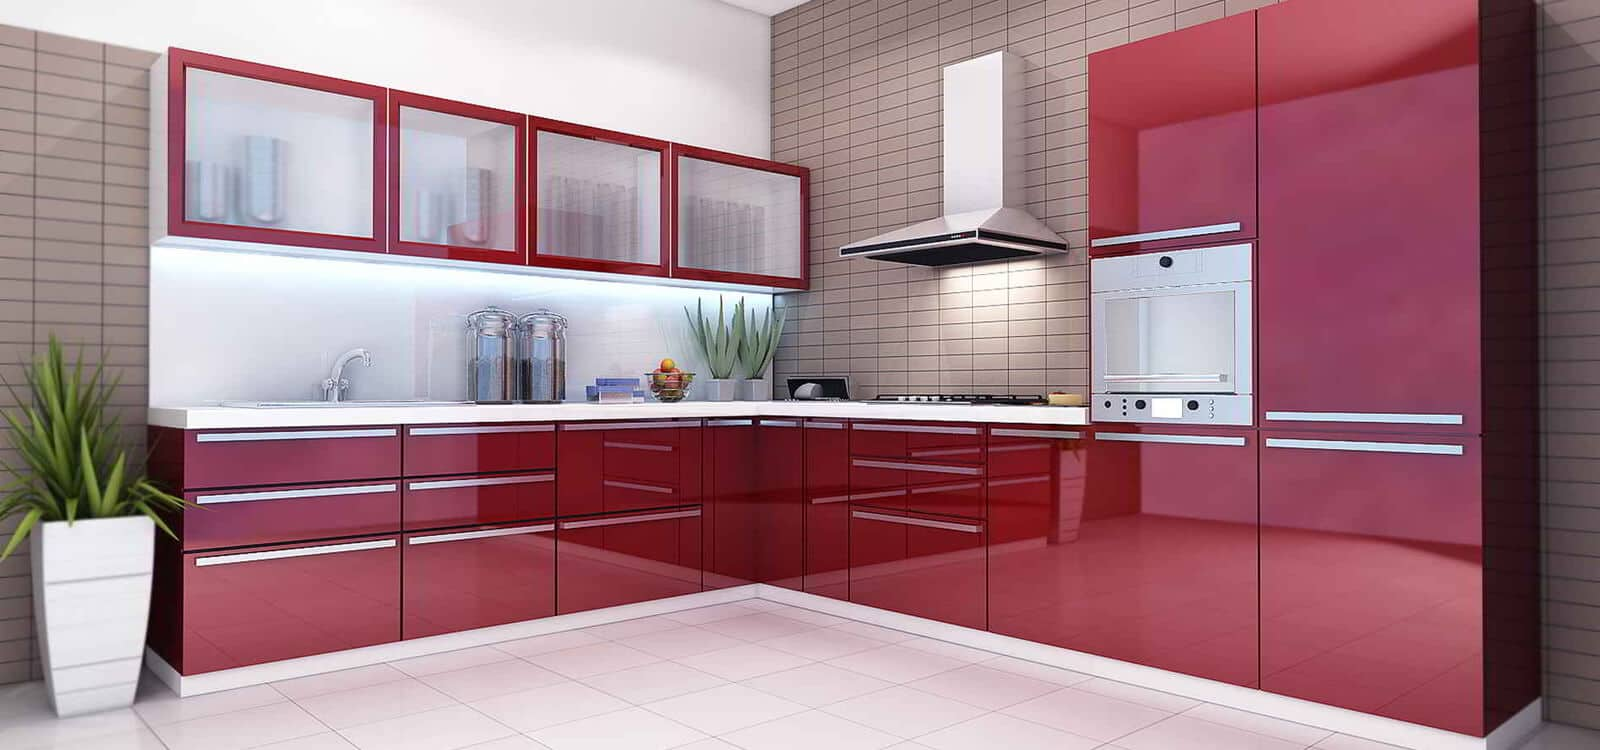 Kitchen zone modular kitchens wardrobes in bangalore for Modular kitchen bangalore designs